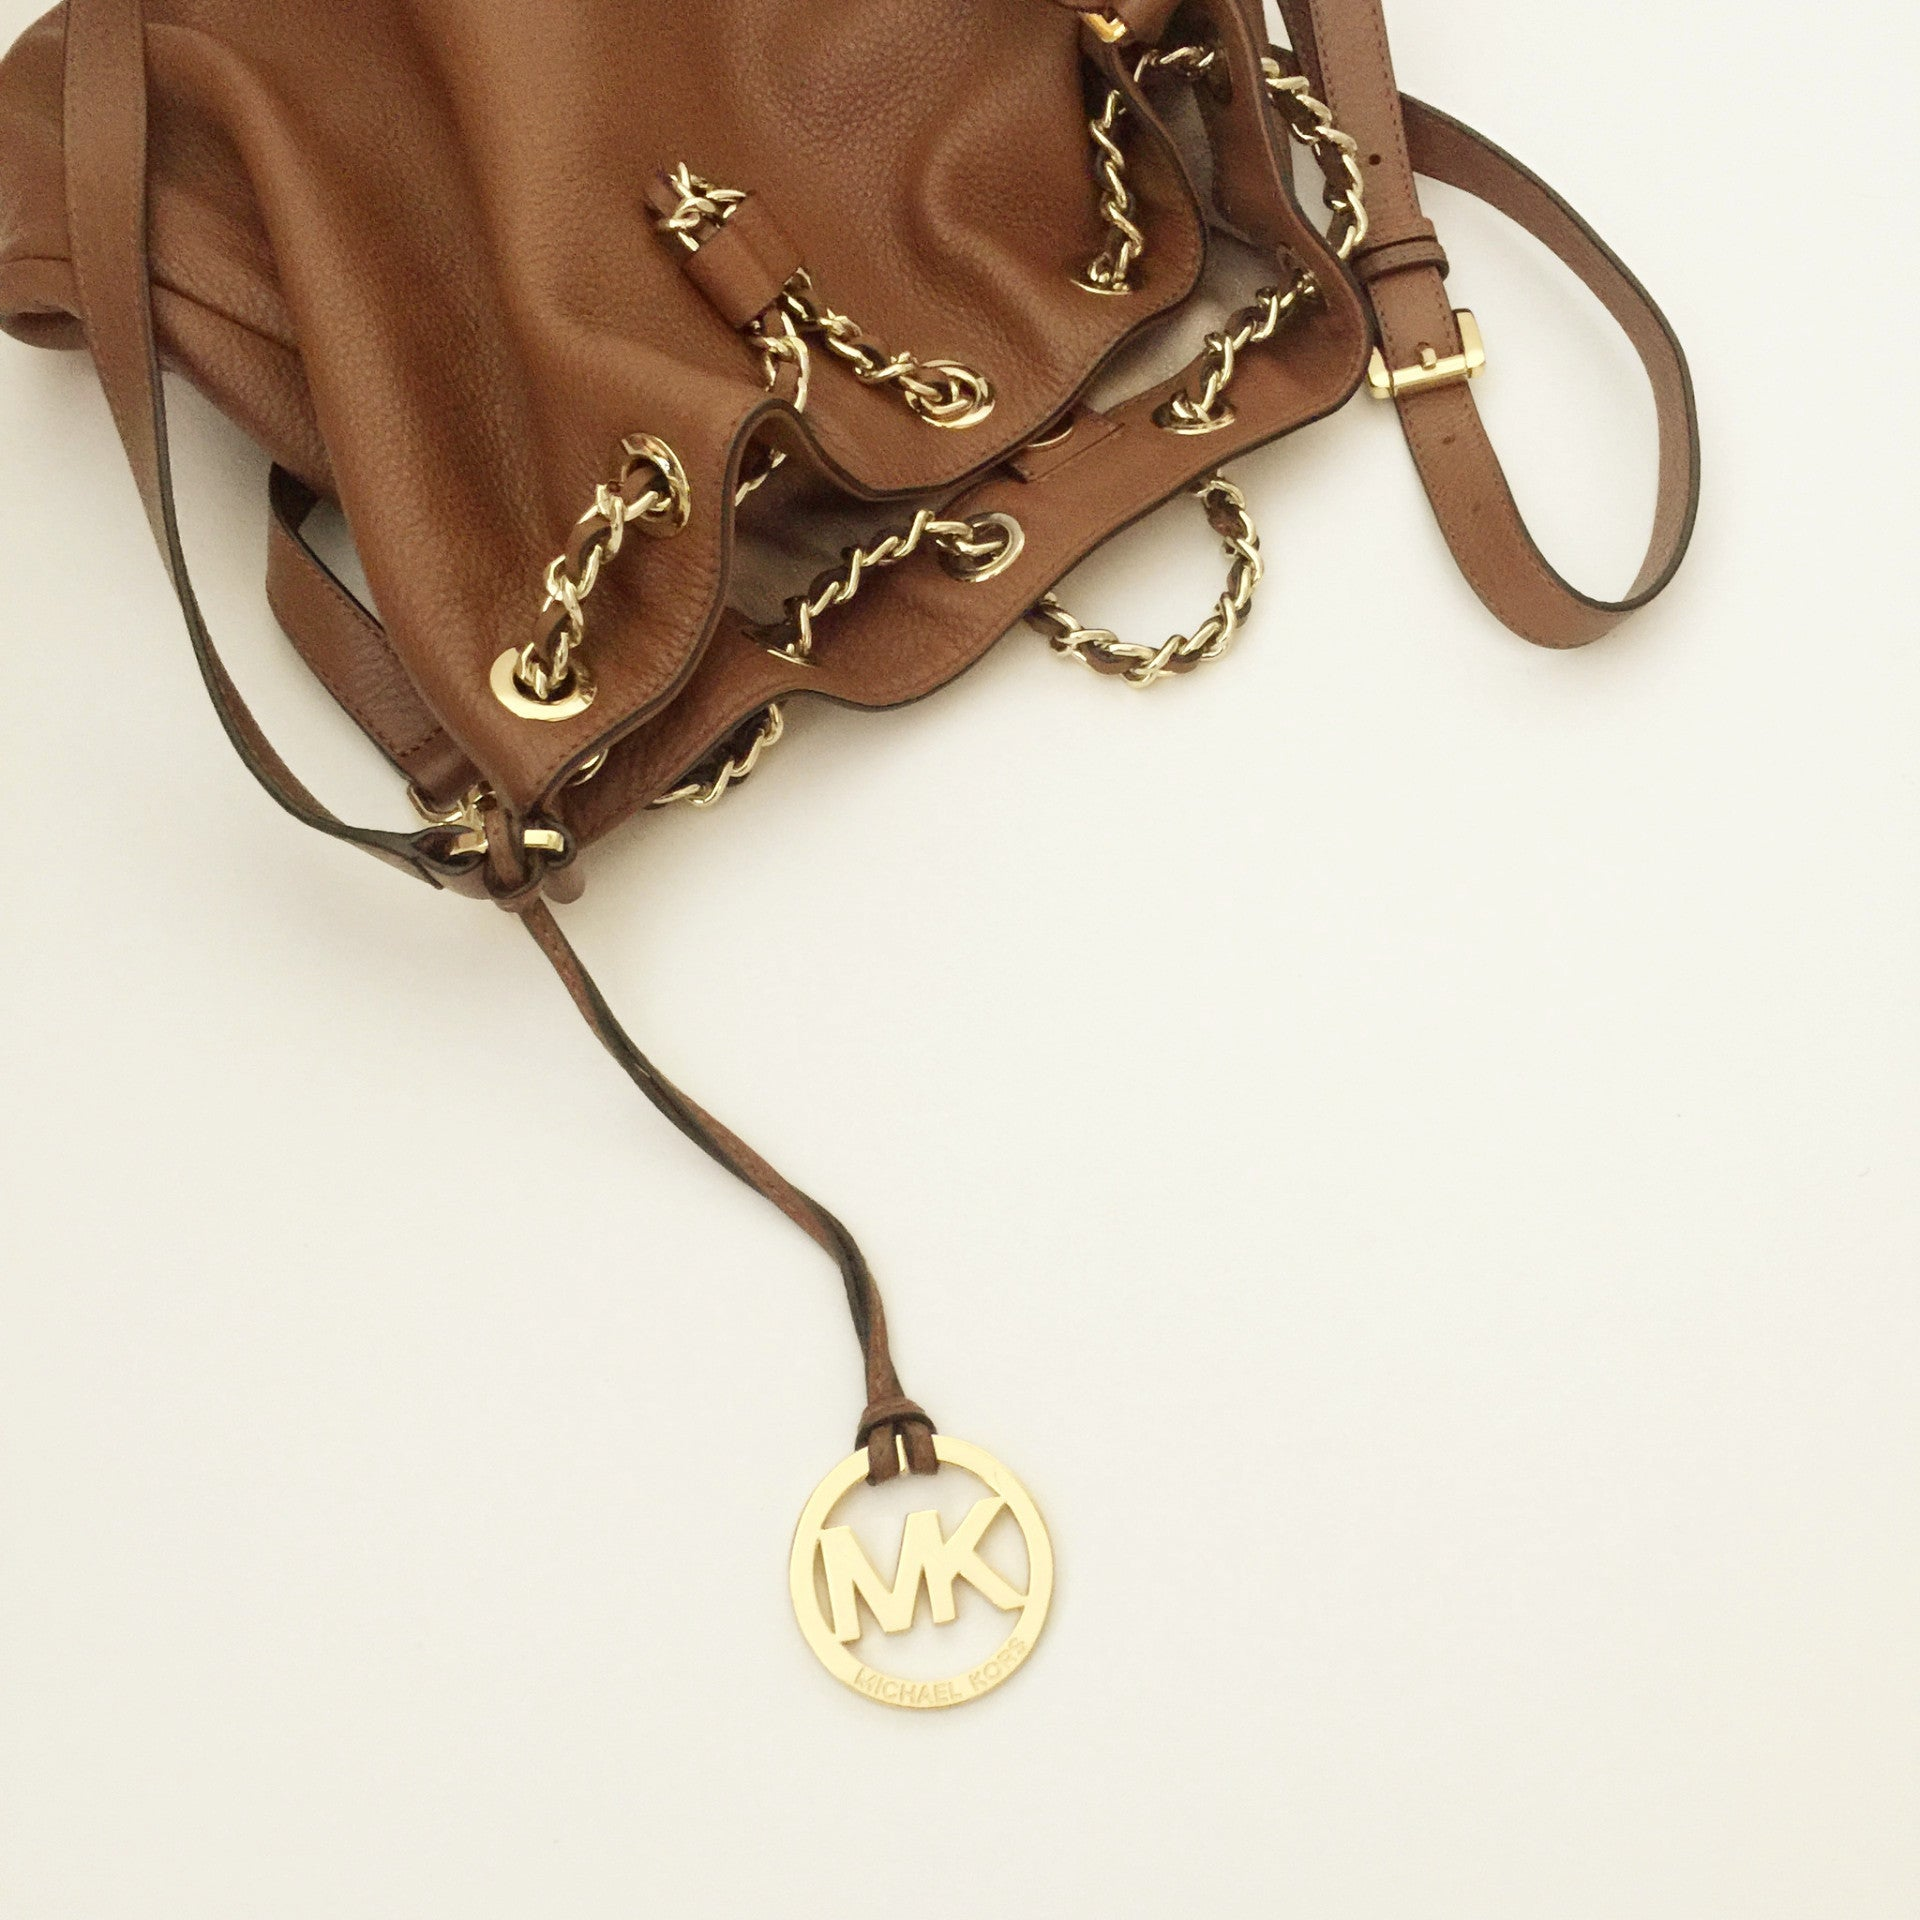 Authentic MICHAEL KORS Frankie Drawstring Bag